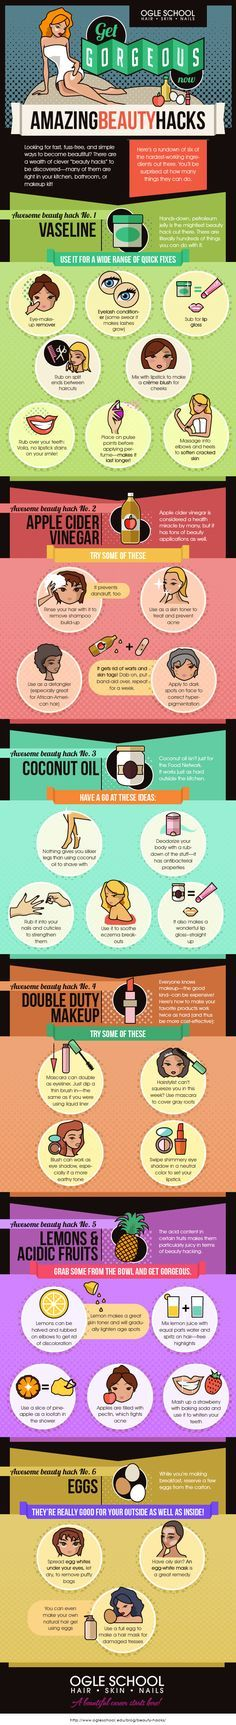 These 10 Awesome Lists for Hair Care and Beauty are SO GREAT! I've tried a couple of the hacks on there and my hair is SO MUCH SOFTER! It can be tough to take care of my thick hair, but these have helped A TON! Definitely pinning for later!